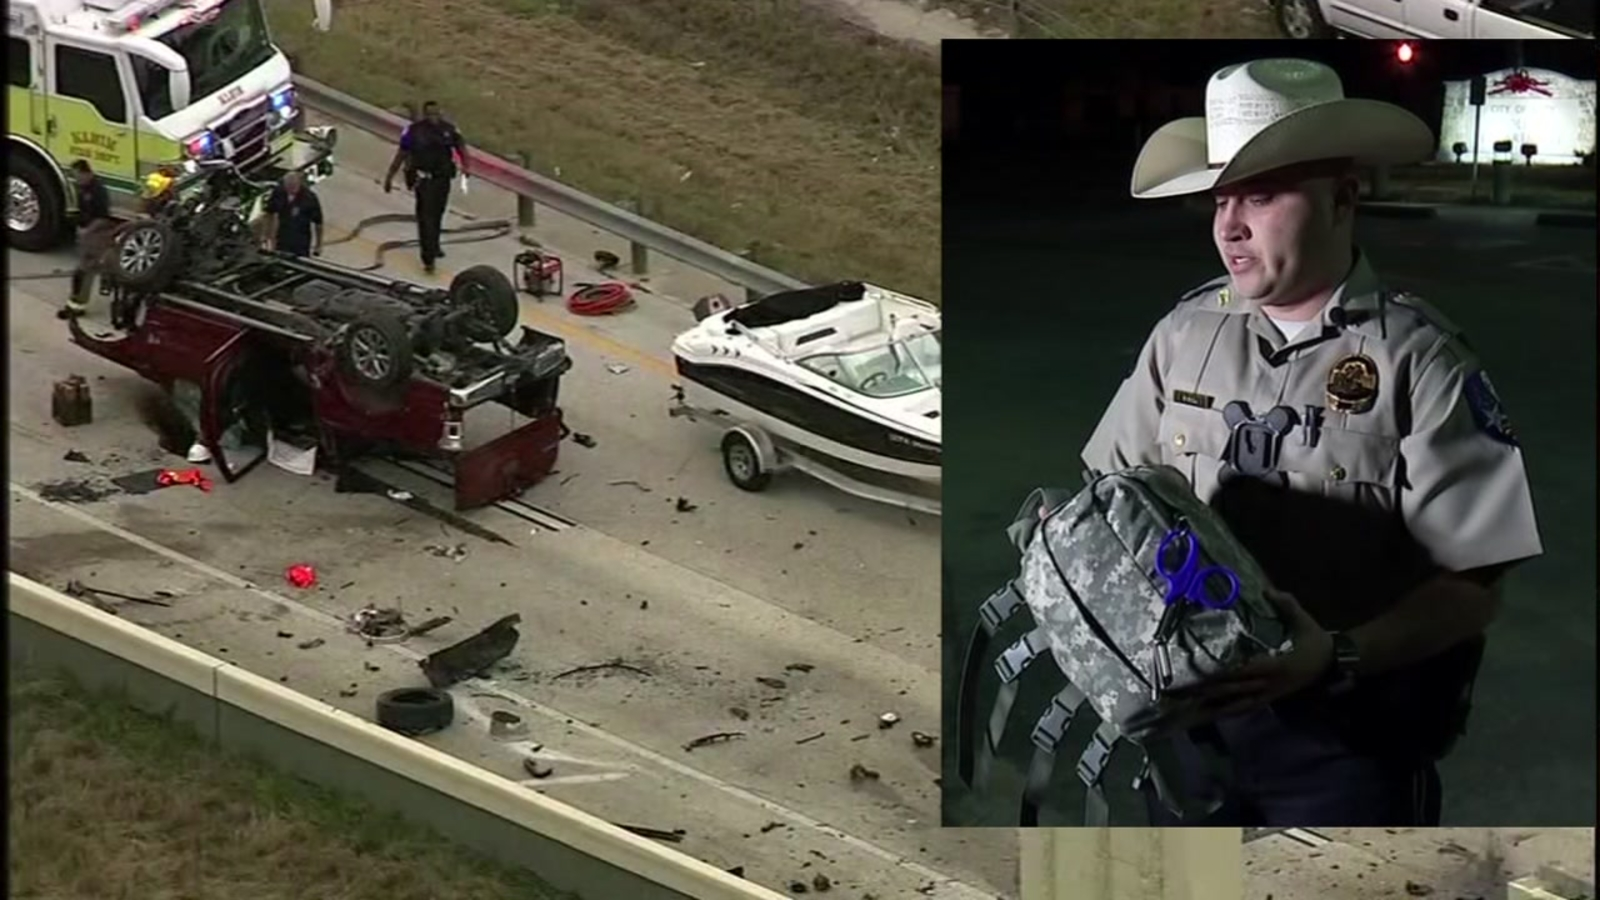 Off-duty officer jumps into action to help after deadly Grand Parkway crash